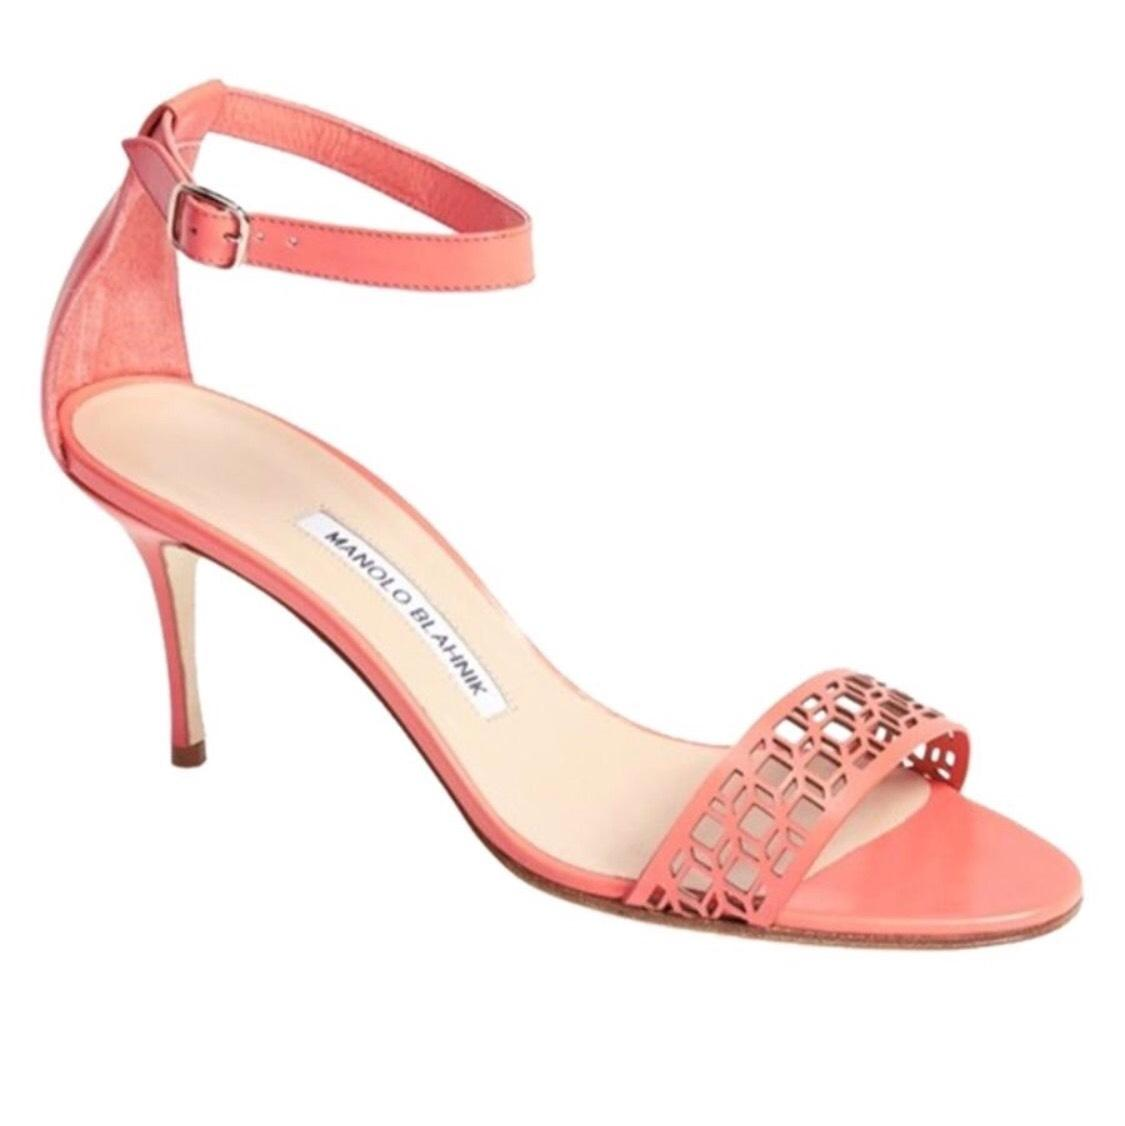 Manolo Blahnik Coral Pink Sandals on Sale, 76% Off ...